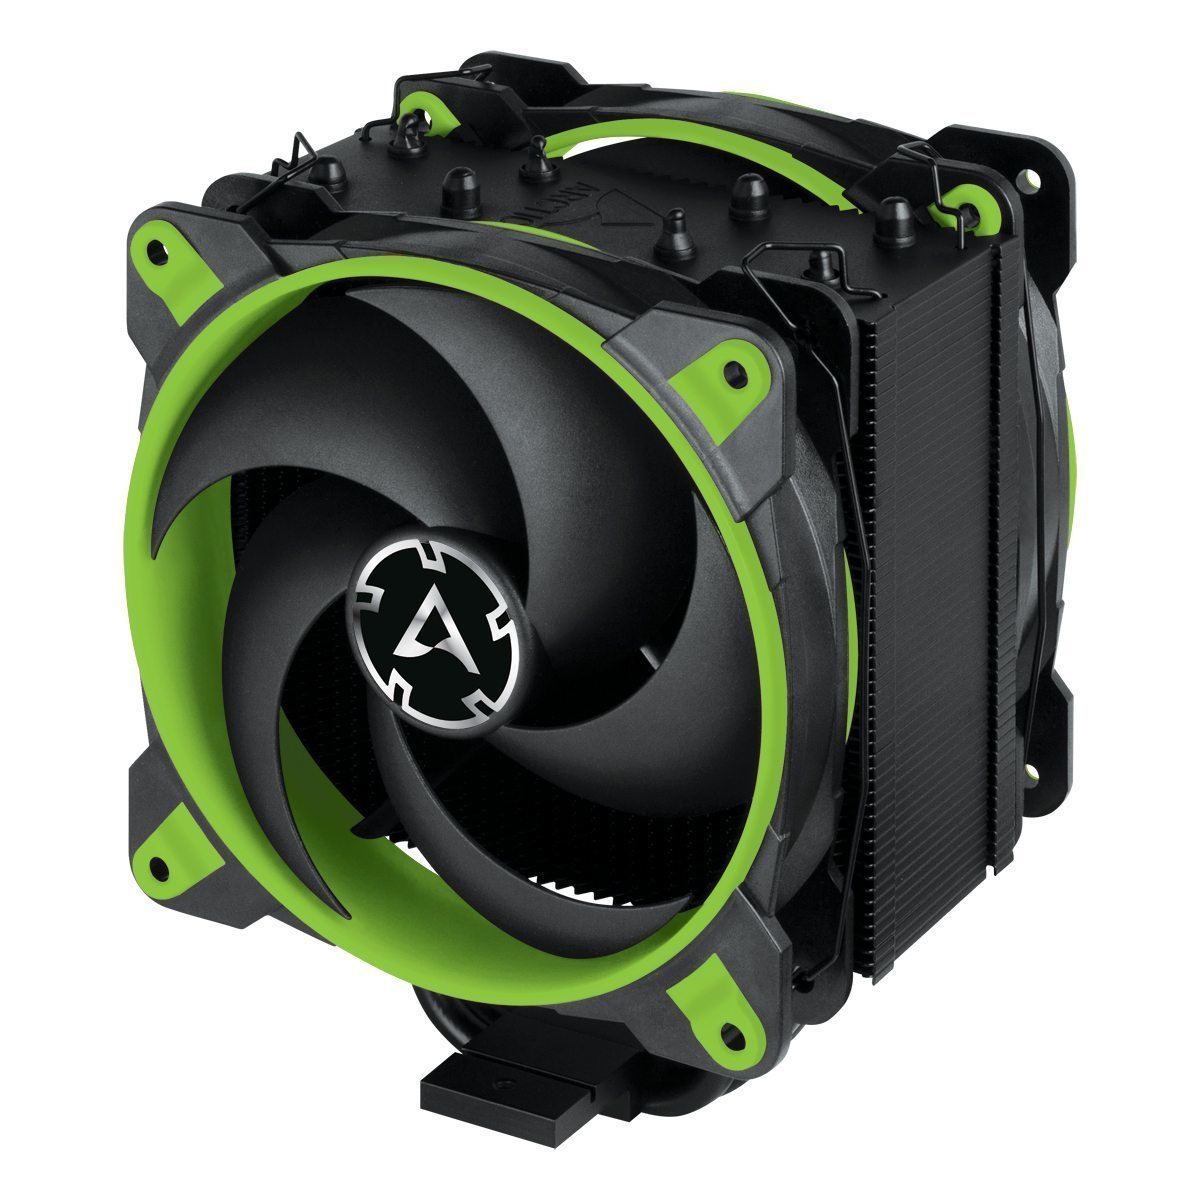 Freezer 34 eSports DUO - Green - LGA2066/LGA2011/LGA1151/AM4